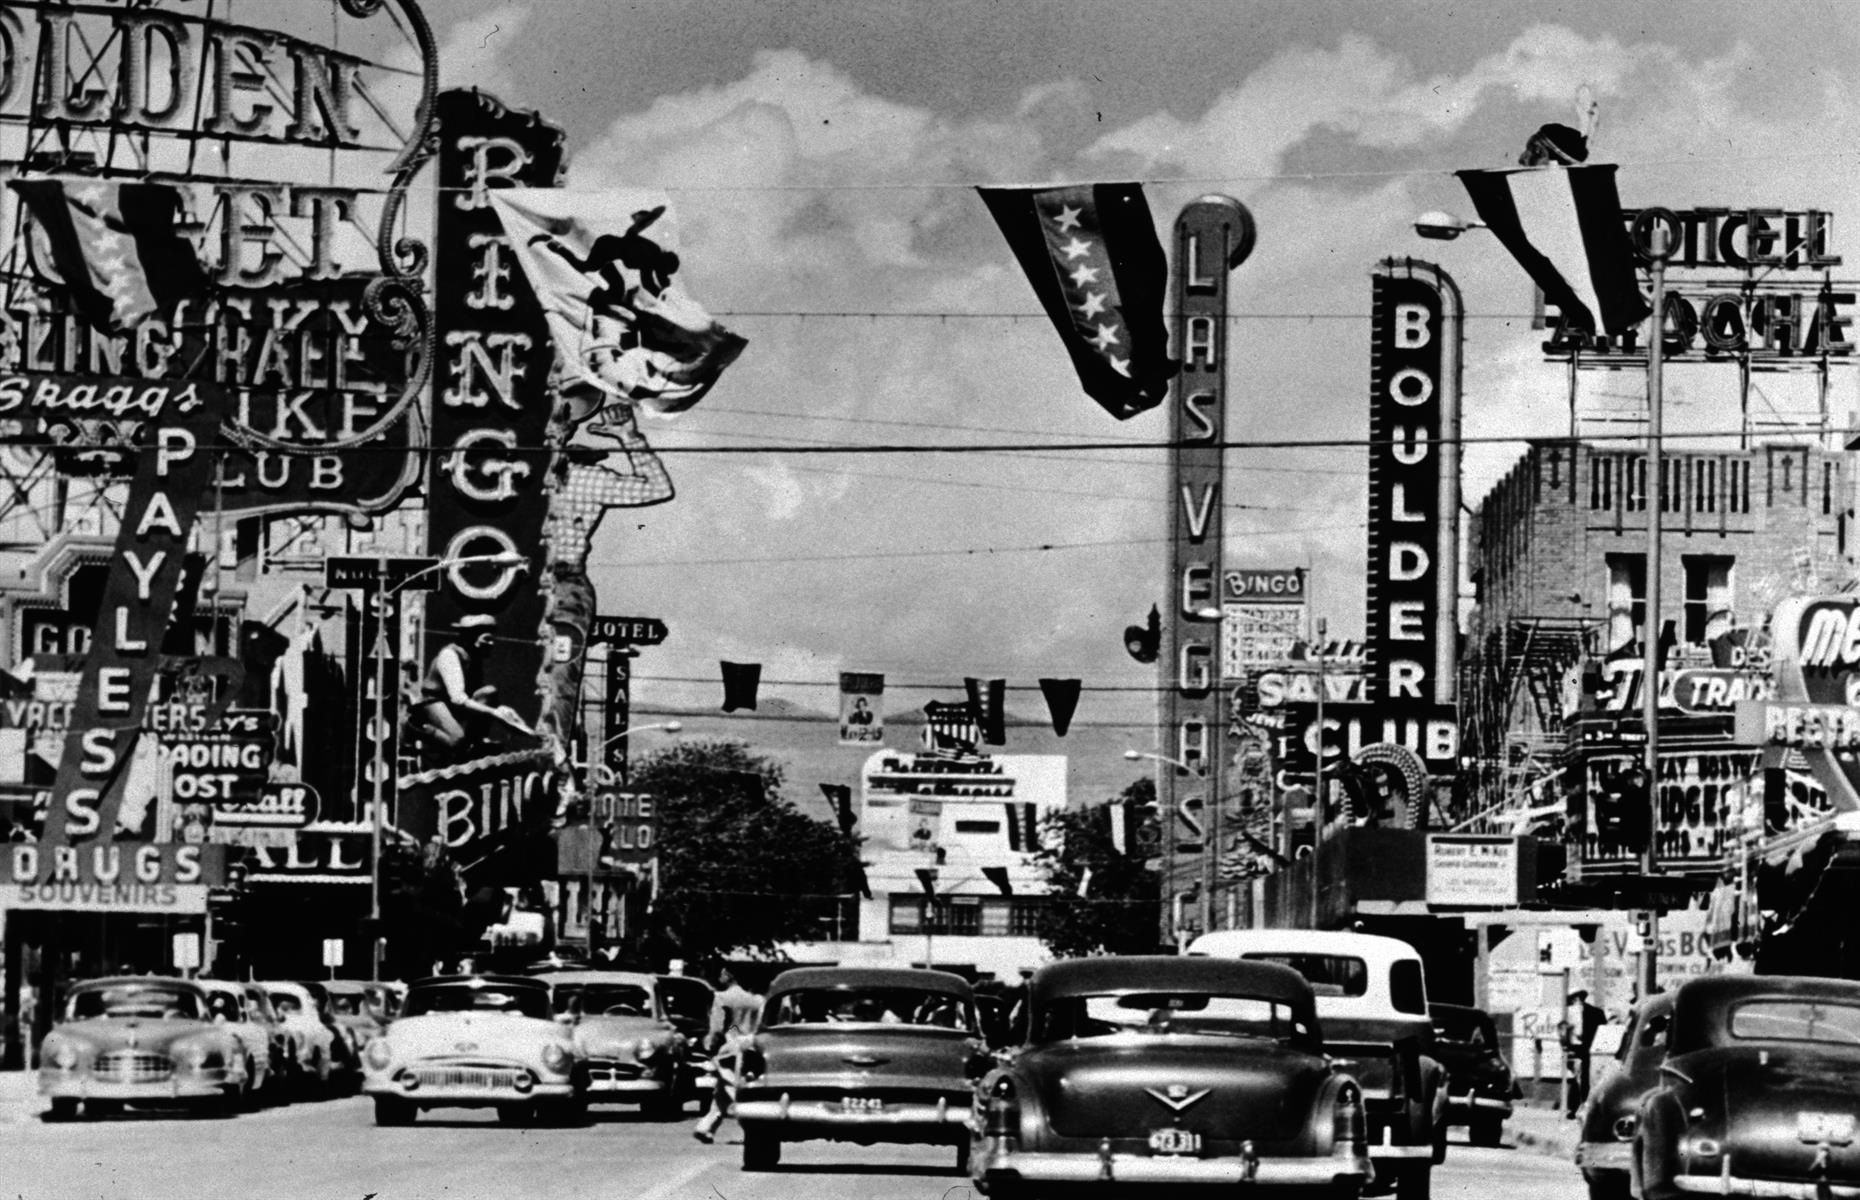 """Slide 22 of 48: After gambling became legal once again in 1931, Las Vegas started its rise to become the country's gaming capital. The desert metropolis' population swelled as workers arrived to work on the Hoover Dam and small casinos and showgirl venues opened on Fremont Street. Pictured here in the mid-1950s, it was the first street in the city to be paved in 1925. The first hotel-casino, El Rancho Vegas, opened on Highway 91 in 1941, with others soon following and the section became known as """"The Strip"""".Learn more about Vegas' history here."""